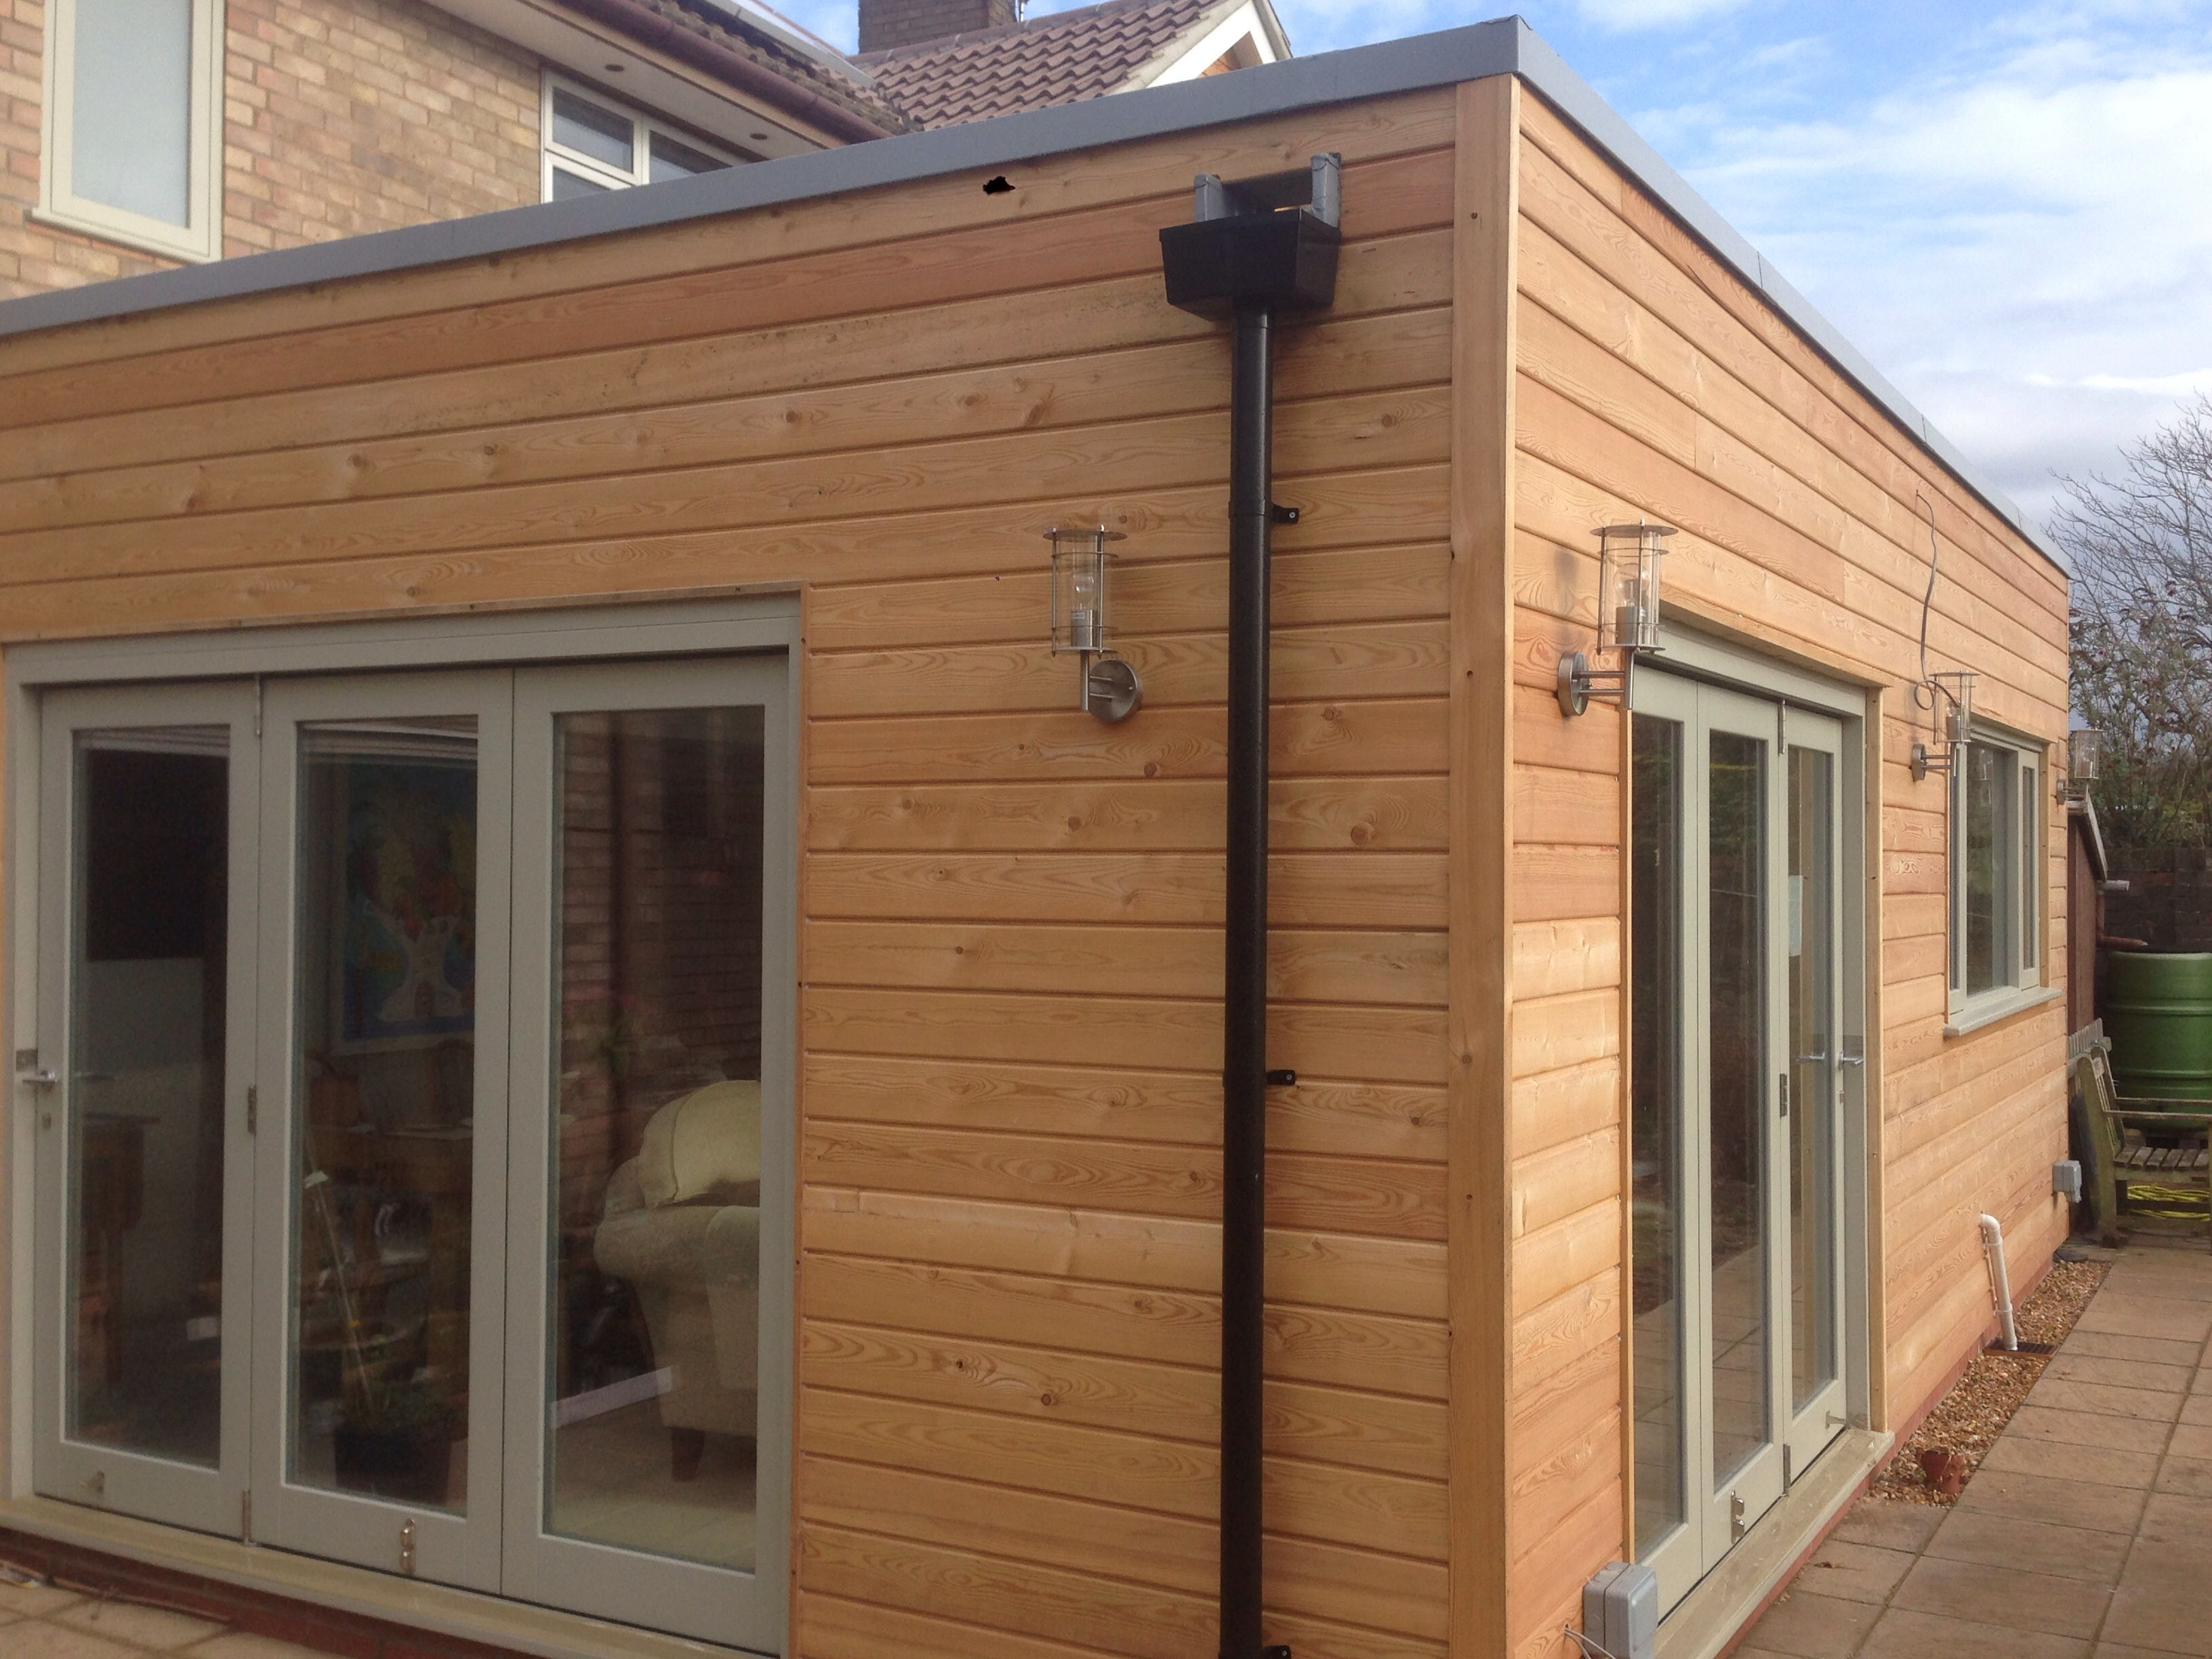 Beaumont road cambridge larch clad timber frame extension for Modern house yorkshire